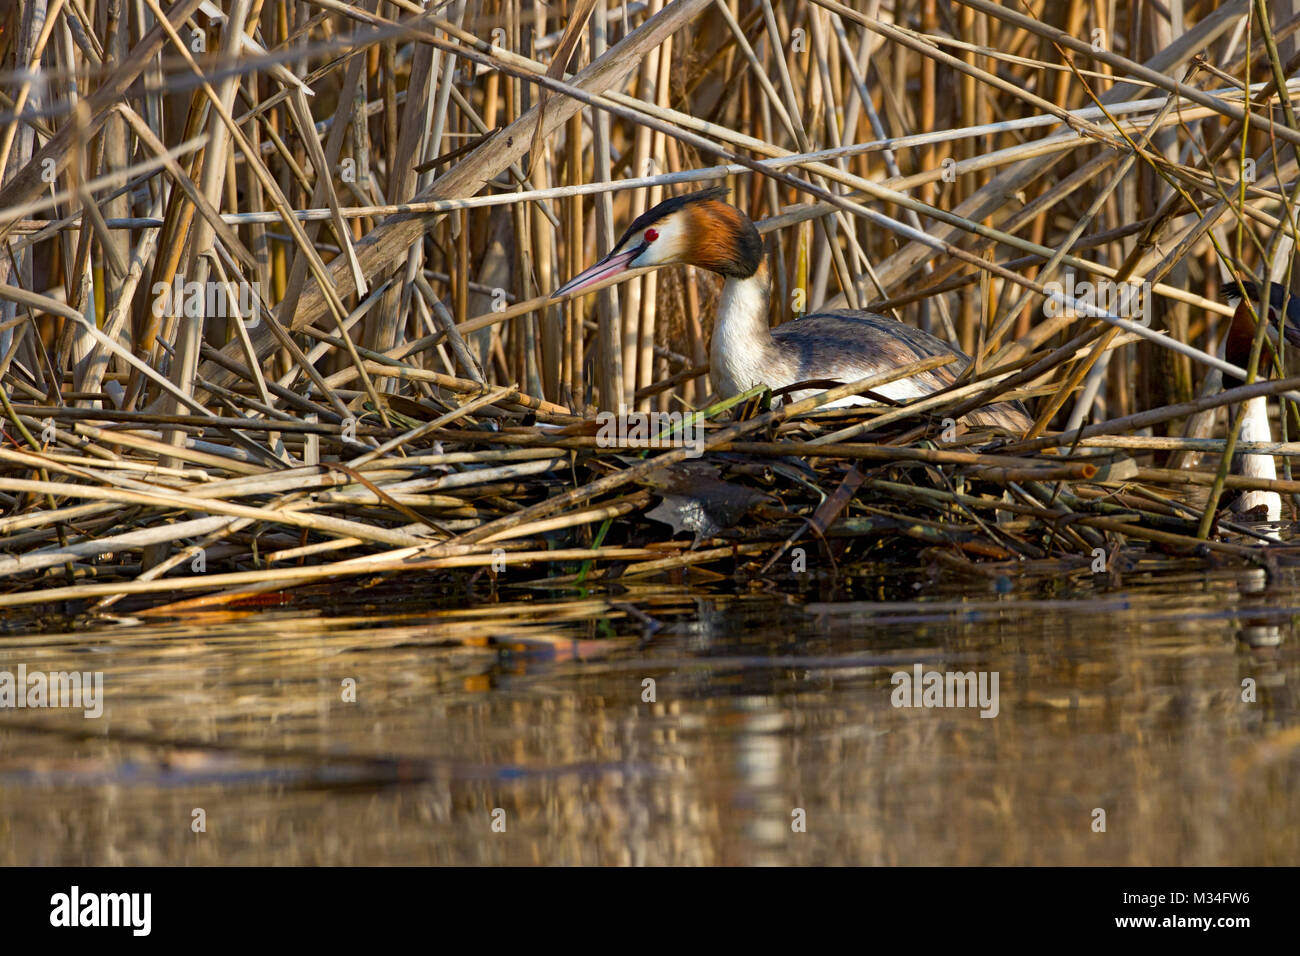 A greater crested grebe in hatching on a floating nest - Stock Image